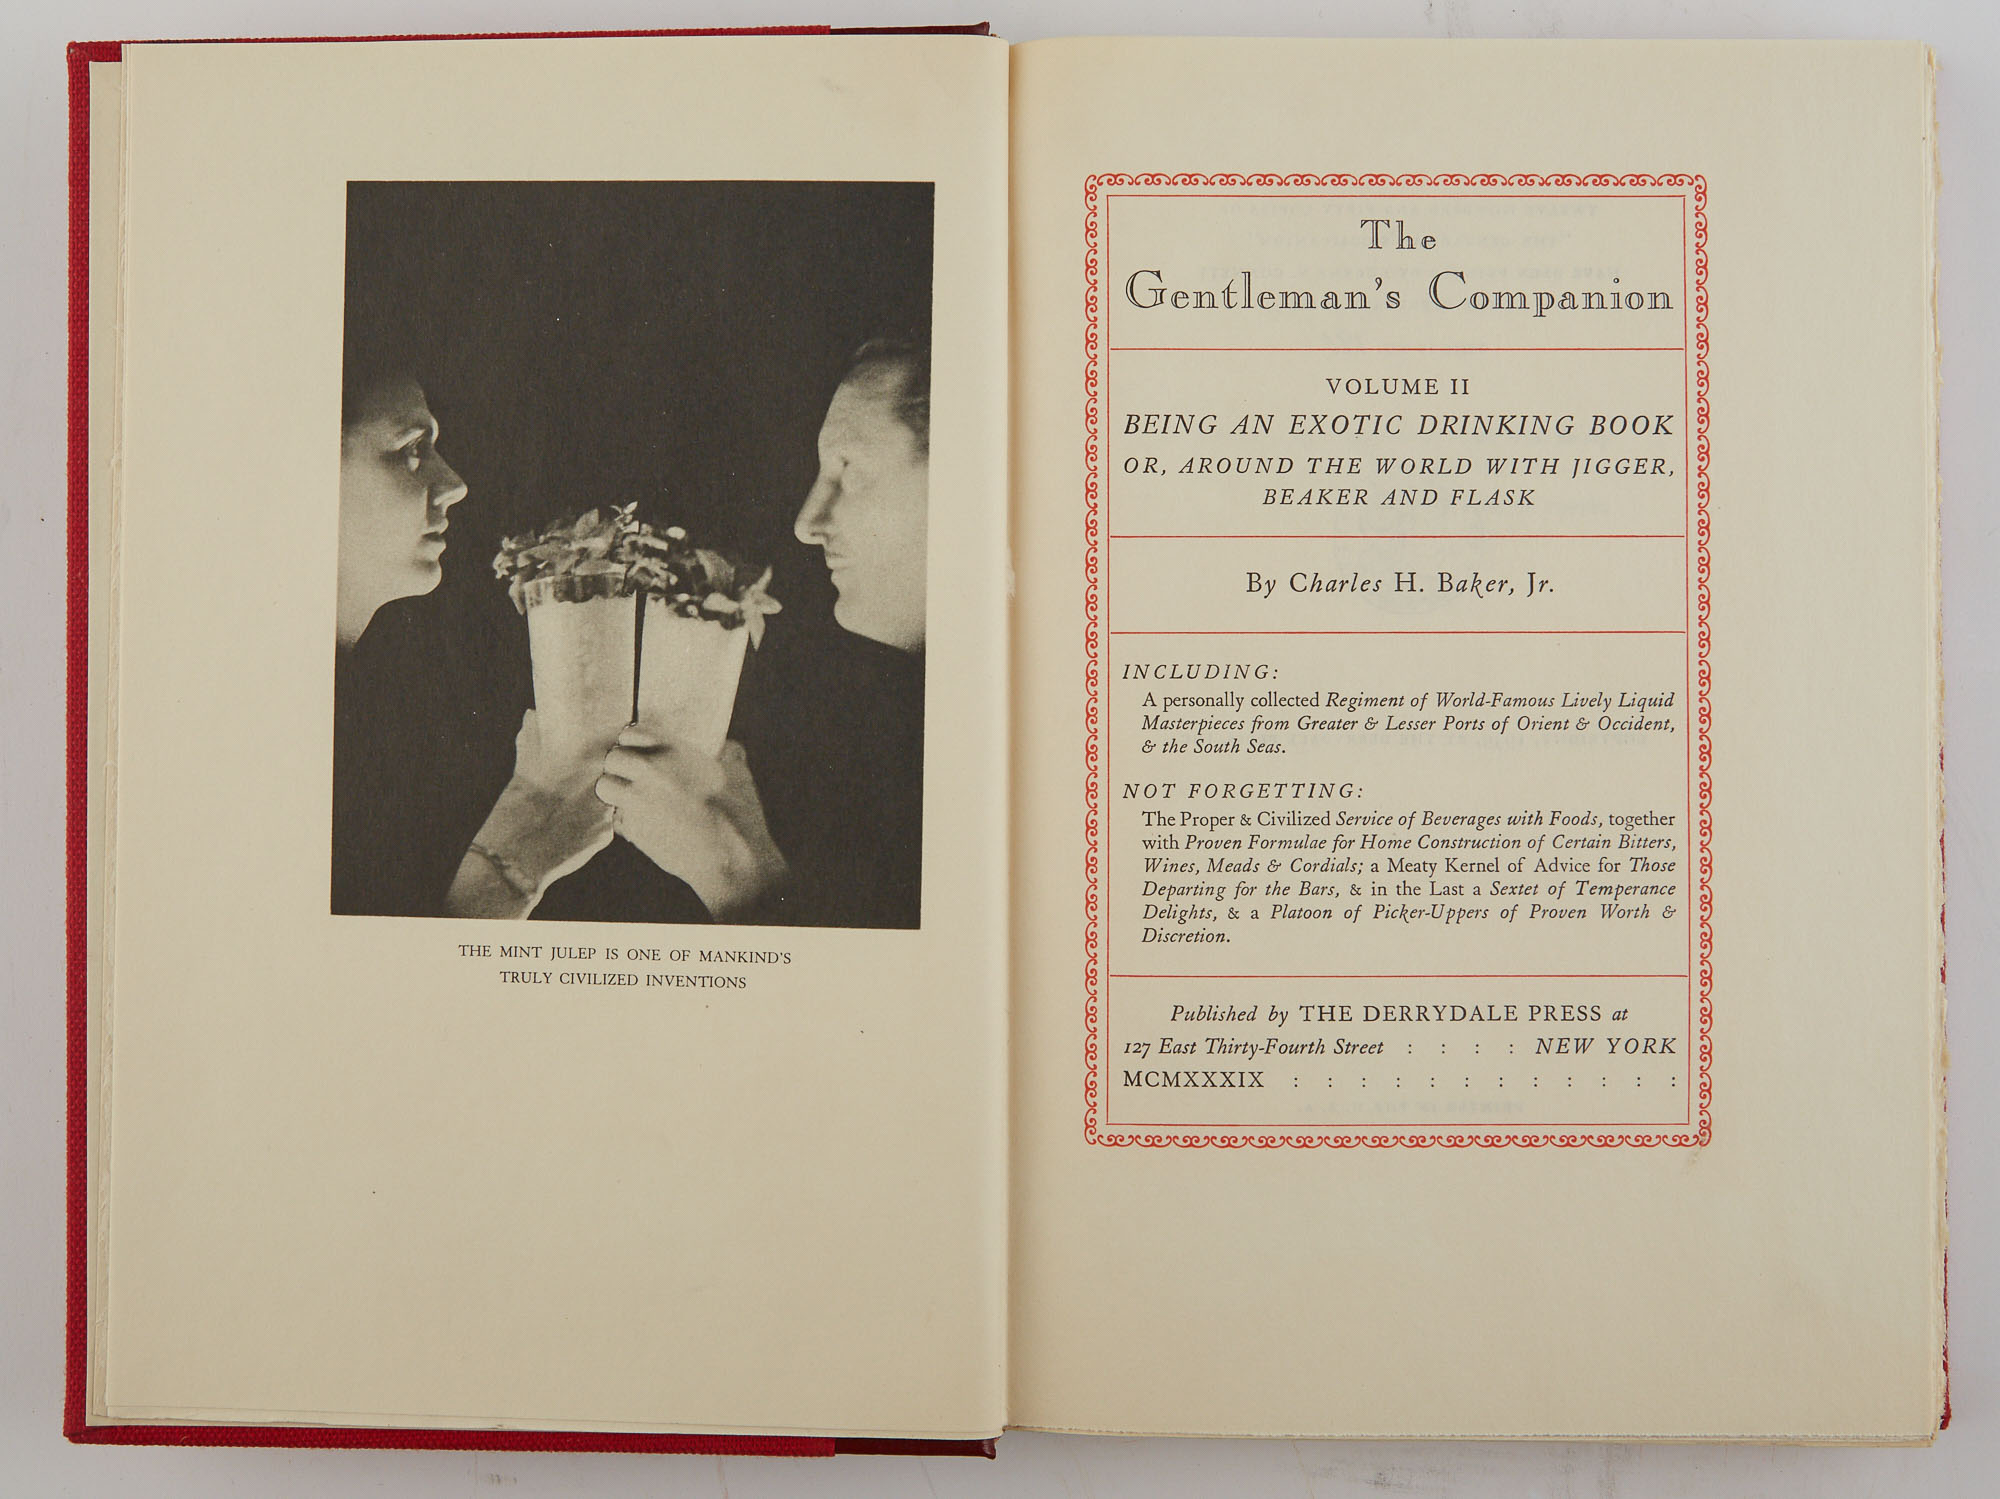 Lot image - [DERRYDALE COOKBOOK]  BAKER, CHARLES H. The Gentlemans Companion ... Volume I Being An Exotic Cookery Book, or, Around the World with Knife, Fork and Spoon; Volume II Being An Exotic Drinking Book, or, Around the World with Jigger, Beaker and Flask.